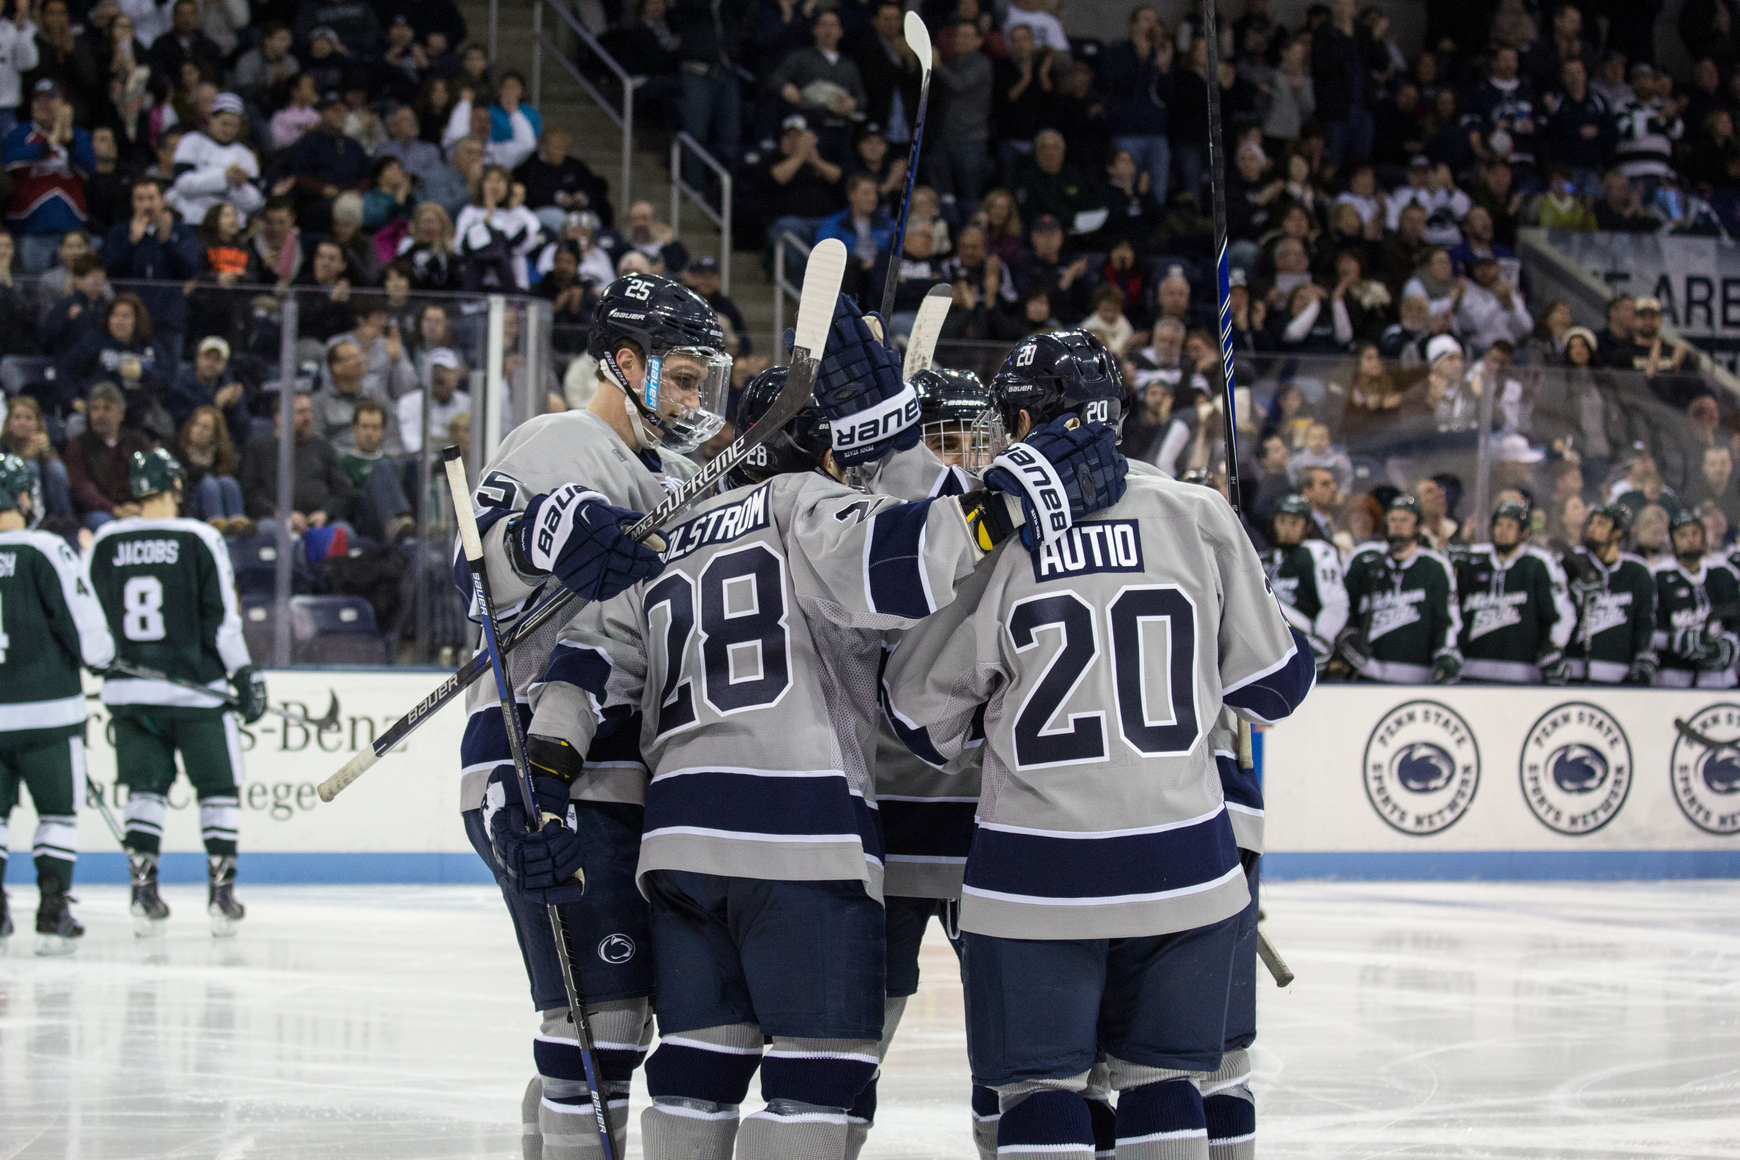 penn state hockey: 2015 season report card